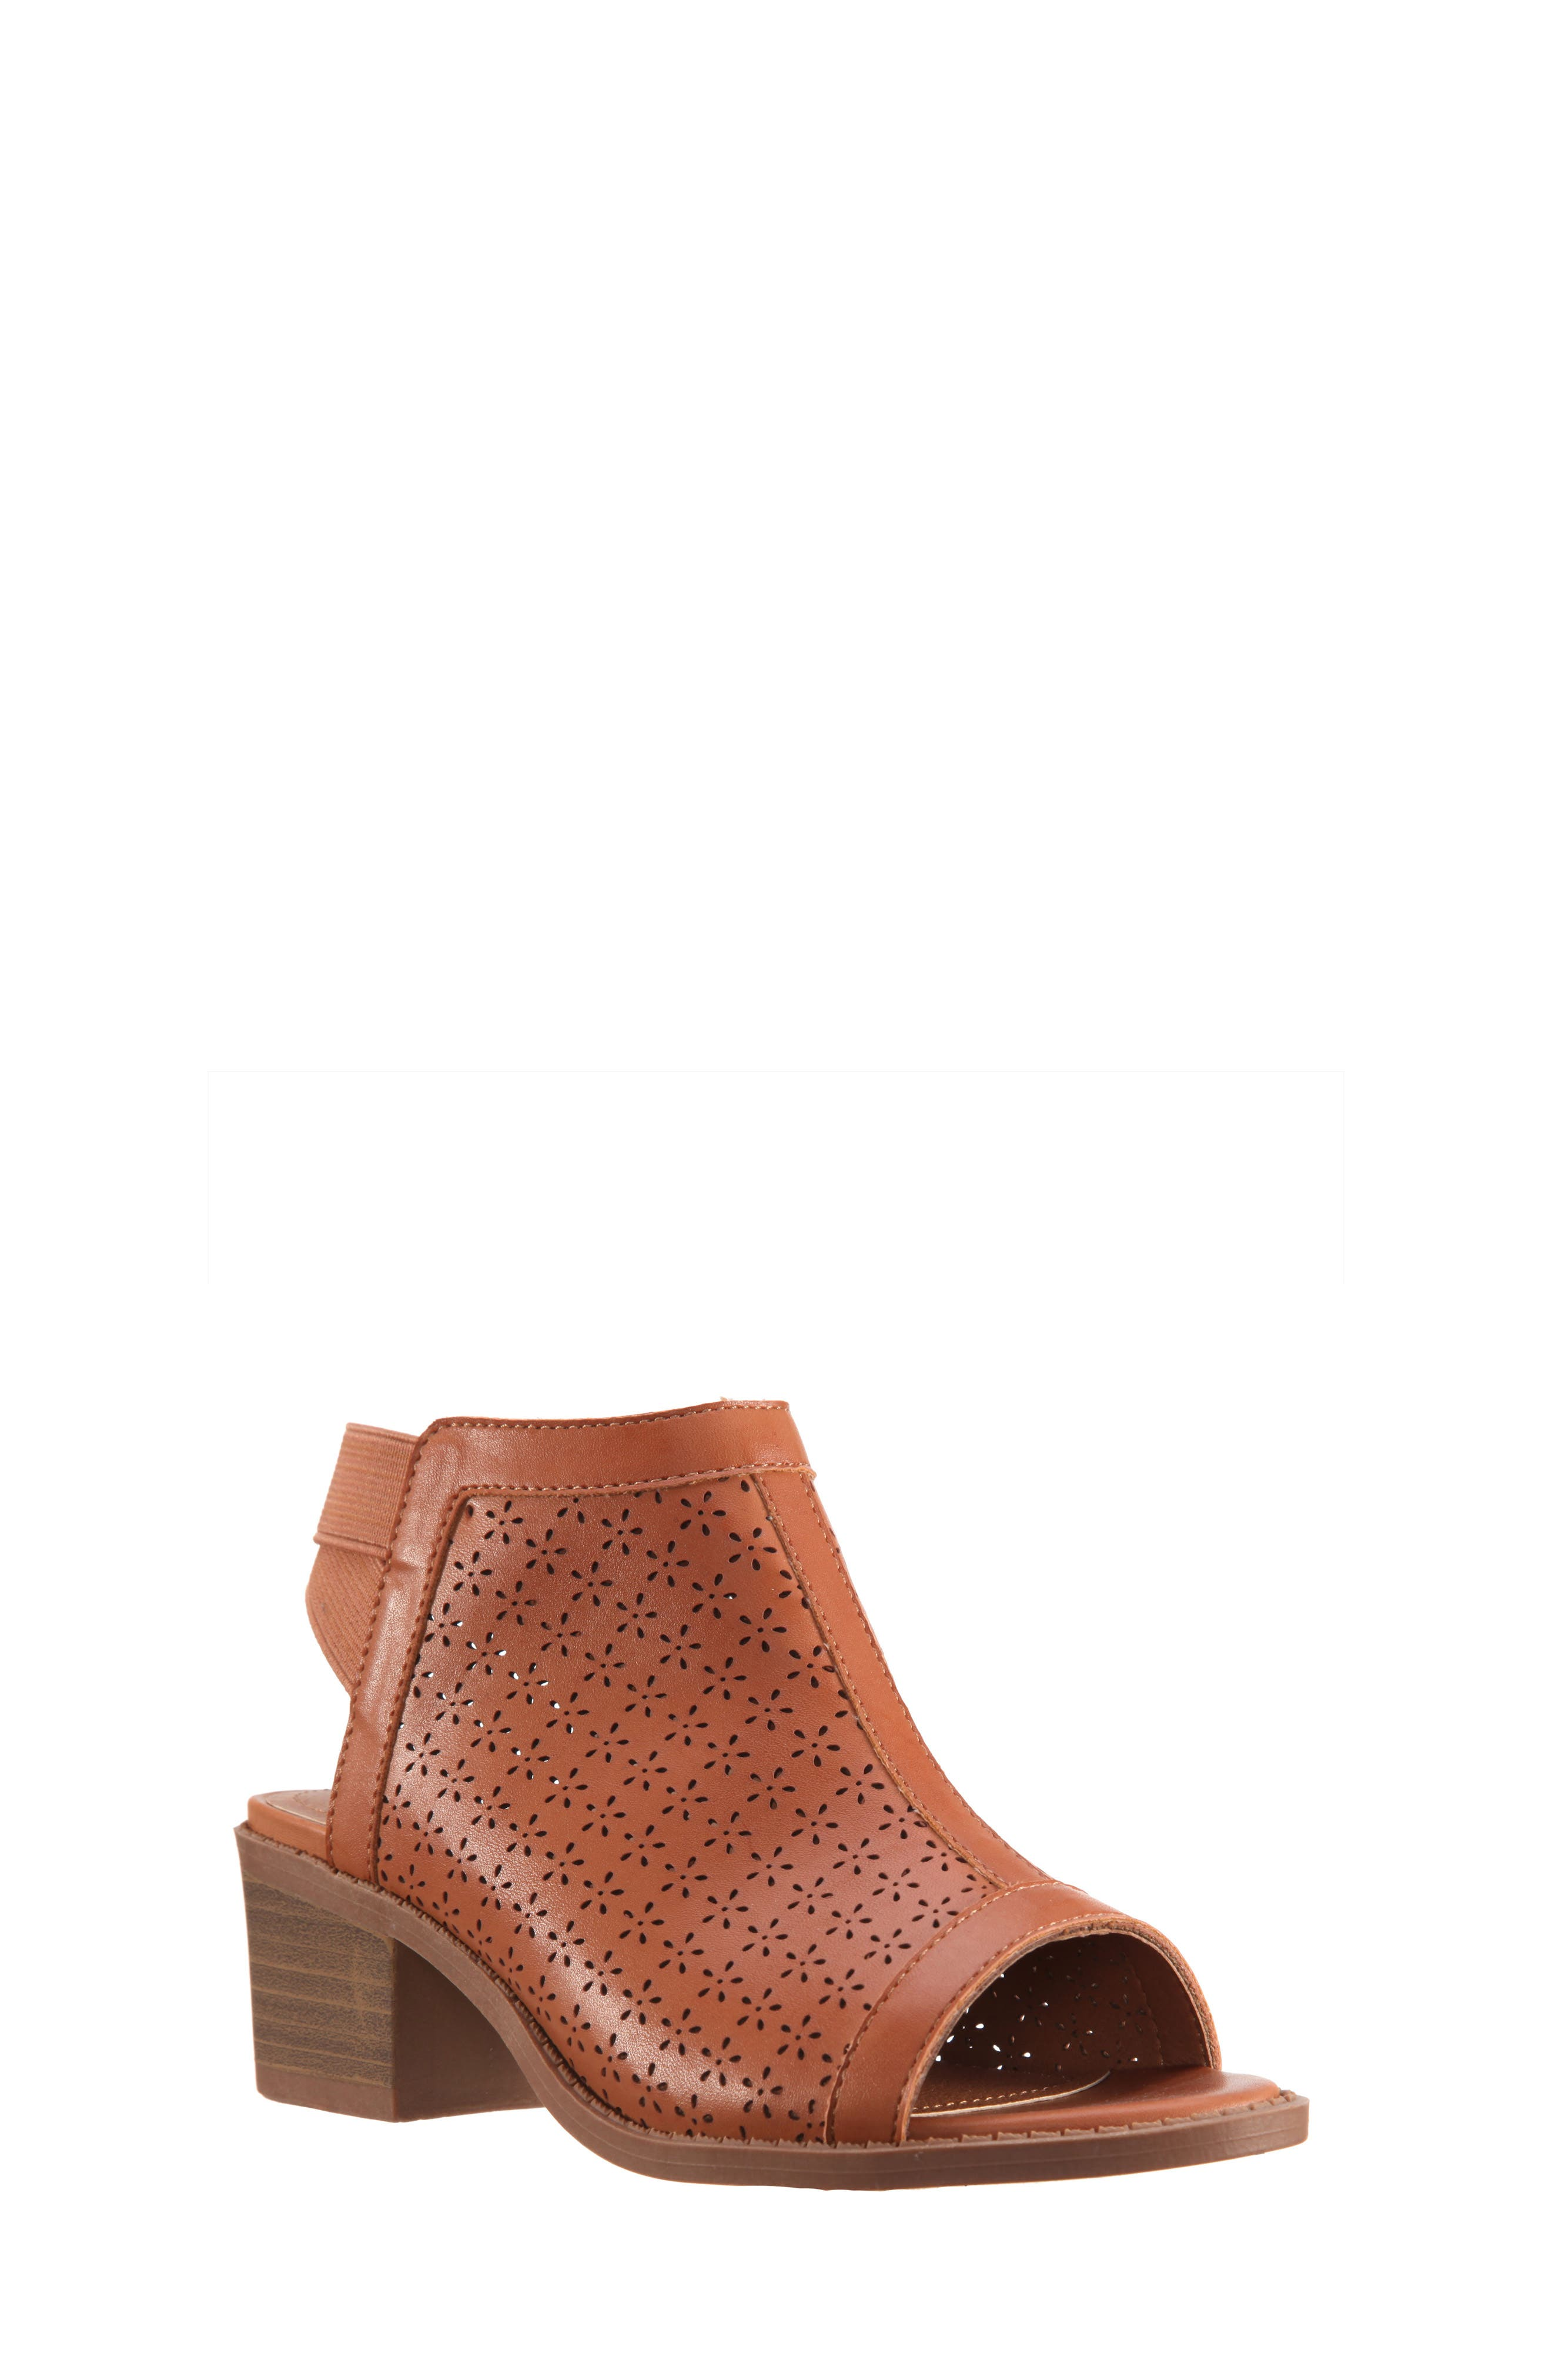 Maya Perforated Peep Toe Bootie,                         Main,                         color, Tan Burnished